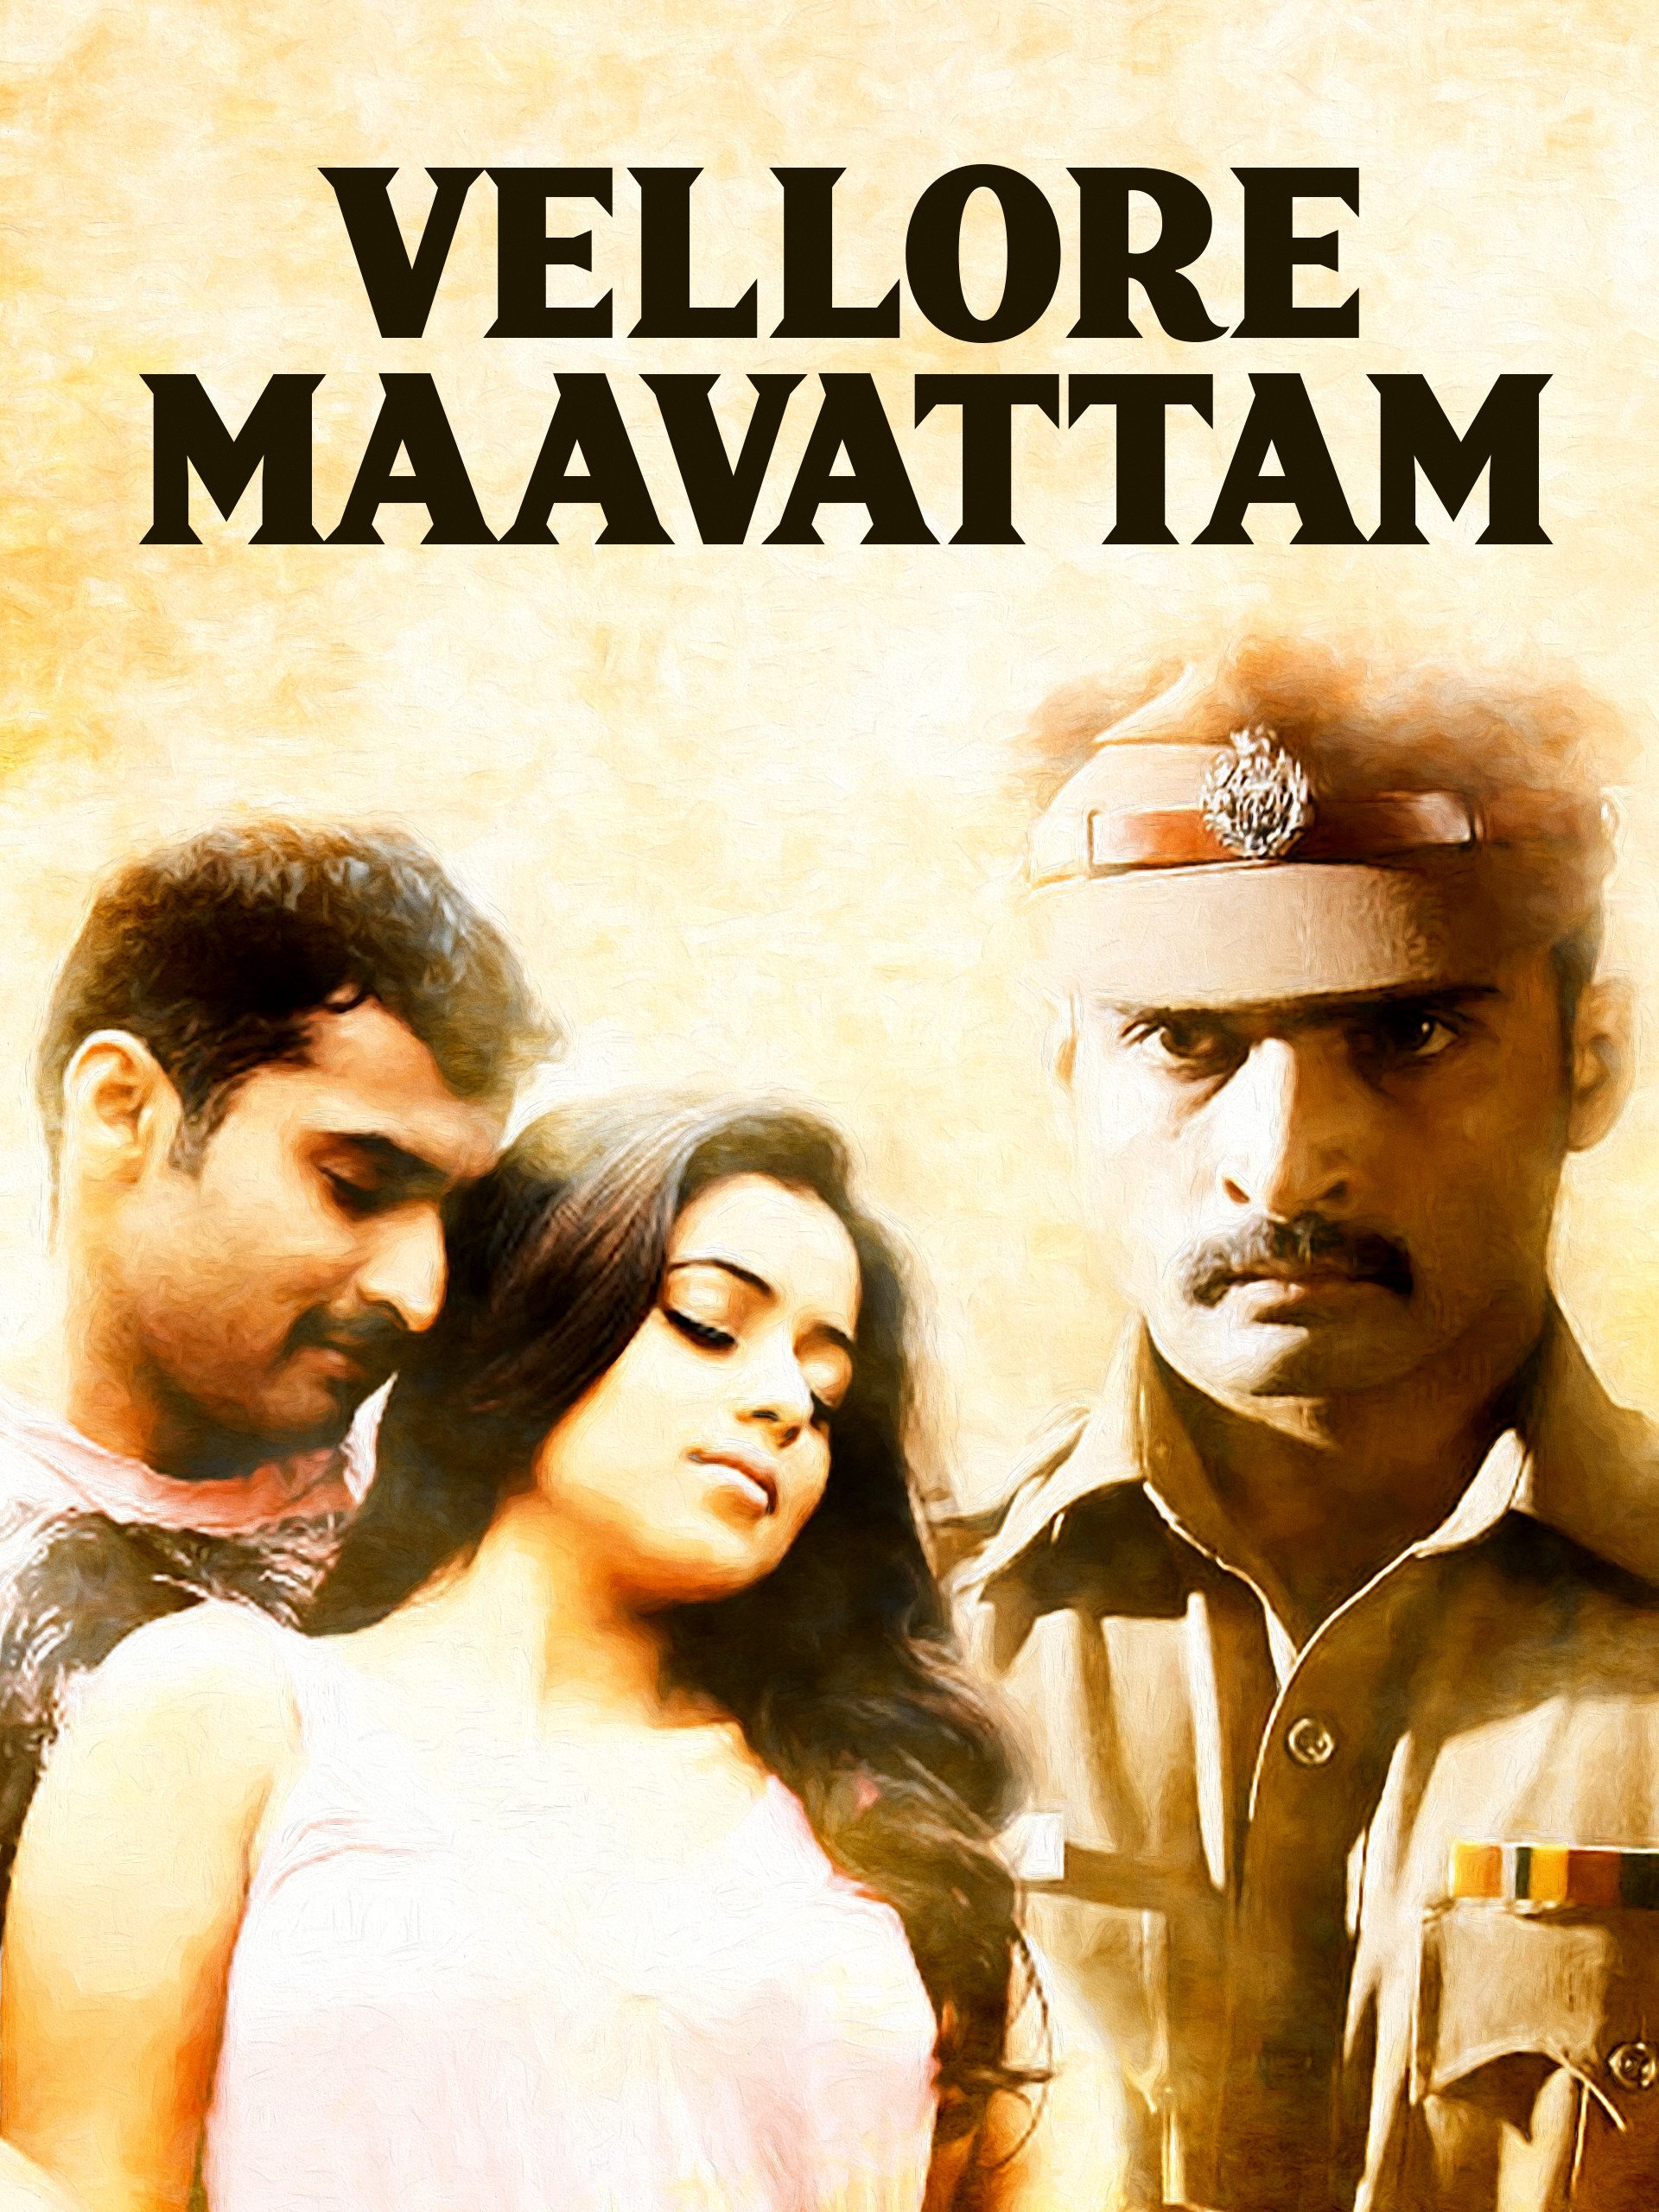 Vellore Maavattam 2020 Hindi Dubbed Movie 480p HDRip 300MB x264 AAC